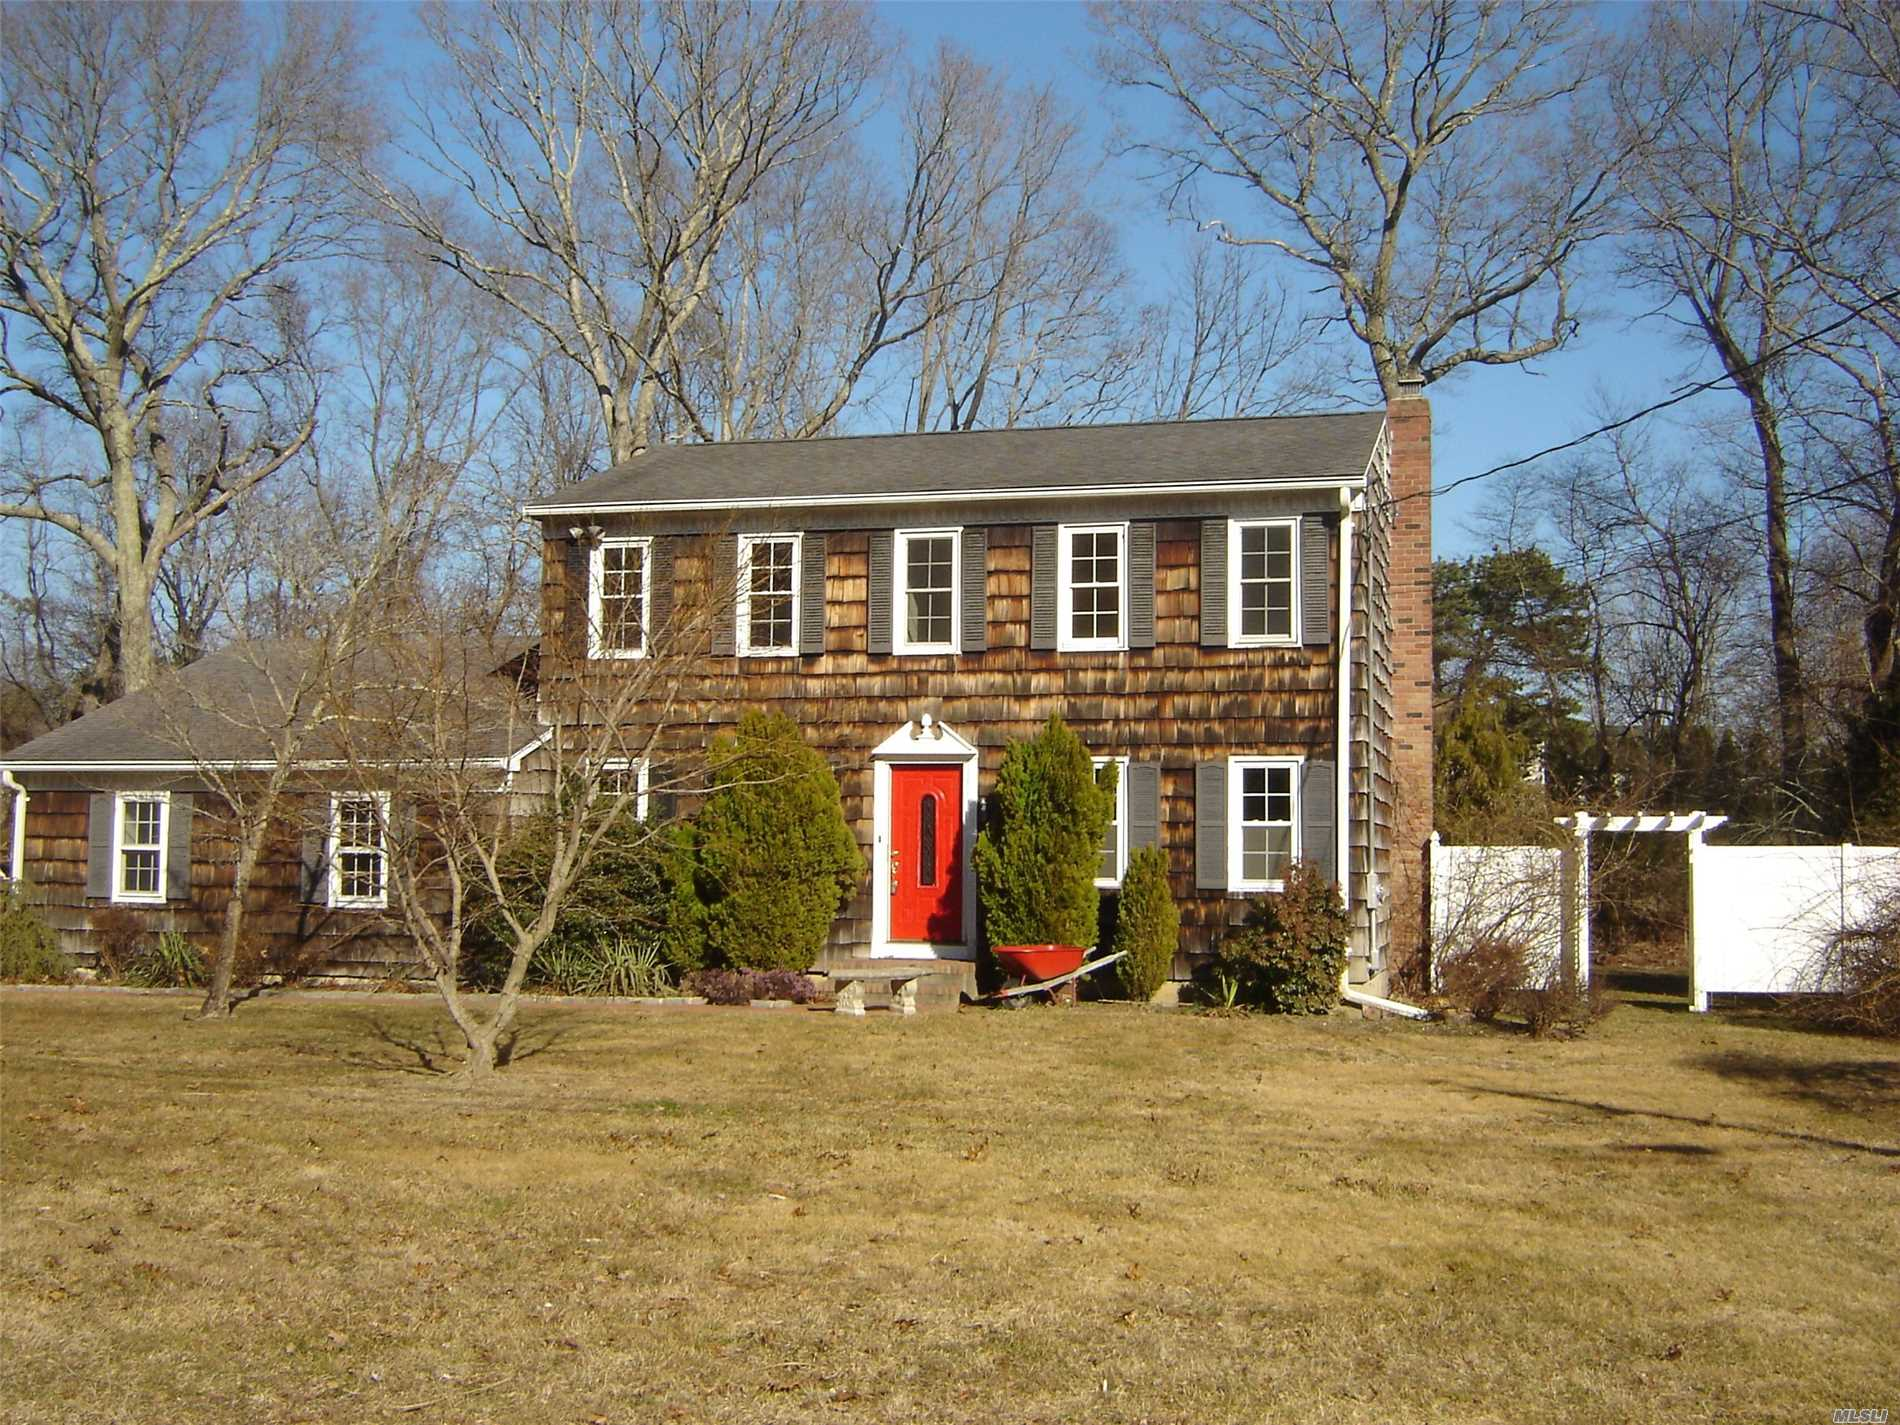 Nicely Kept Colonial In Desirable Wooded Development. Shoreham-Wading River Schools, Hardwood Floors, Freshly Painted Interior, Den W/Wood Burning Stove, Finished Basement W/Playroom And Separate Office Or Study Room. Large Private Yard With Paver Patio And In-Ground Sprinklers.Cedar Shakes On Entire Exterior. Newer 30 Year Architectural Roof. New asphalt driveway will be installed in approx. 4-5 weeks. Owner wants to hear all offers!